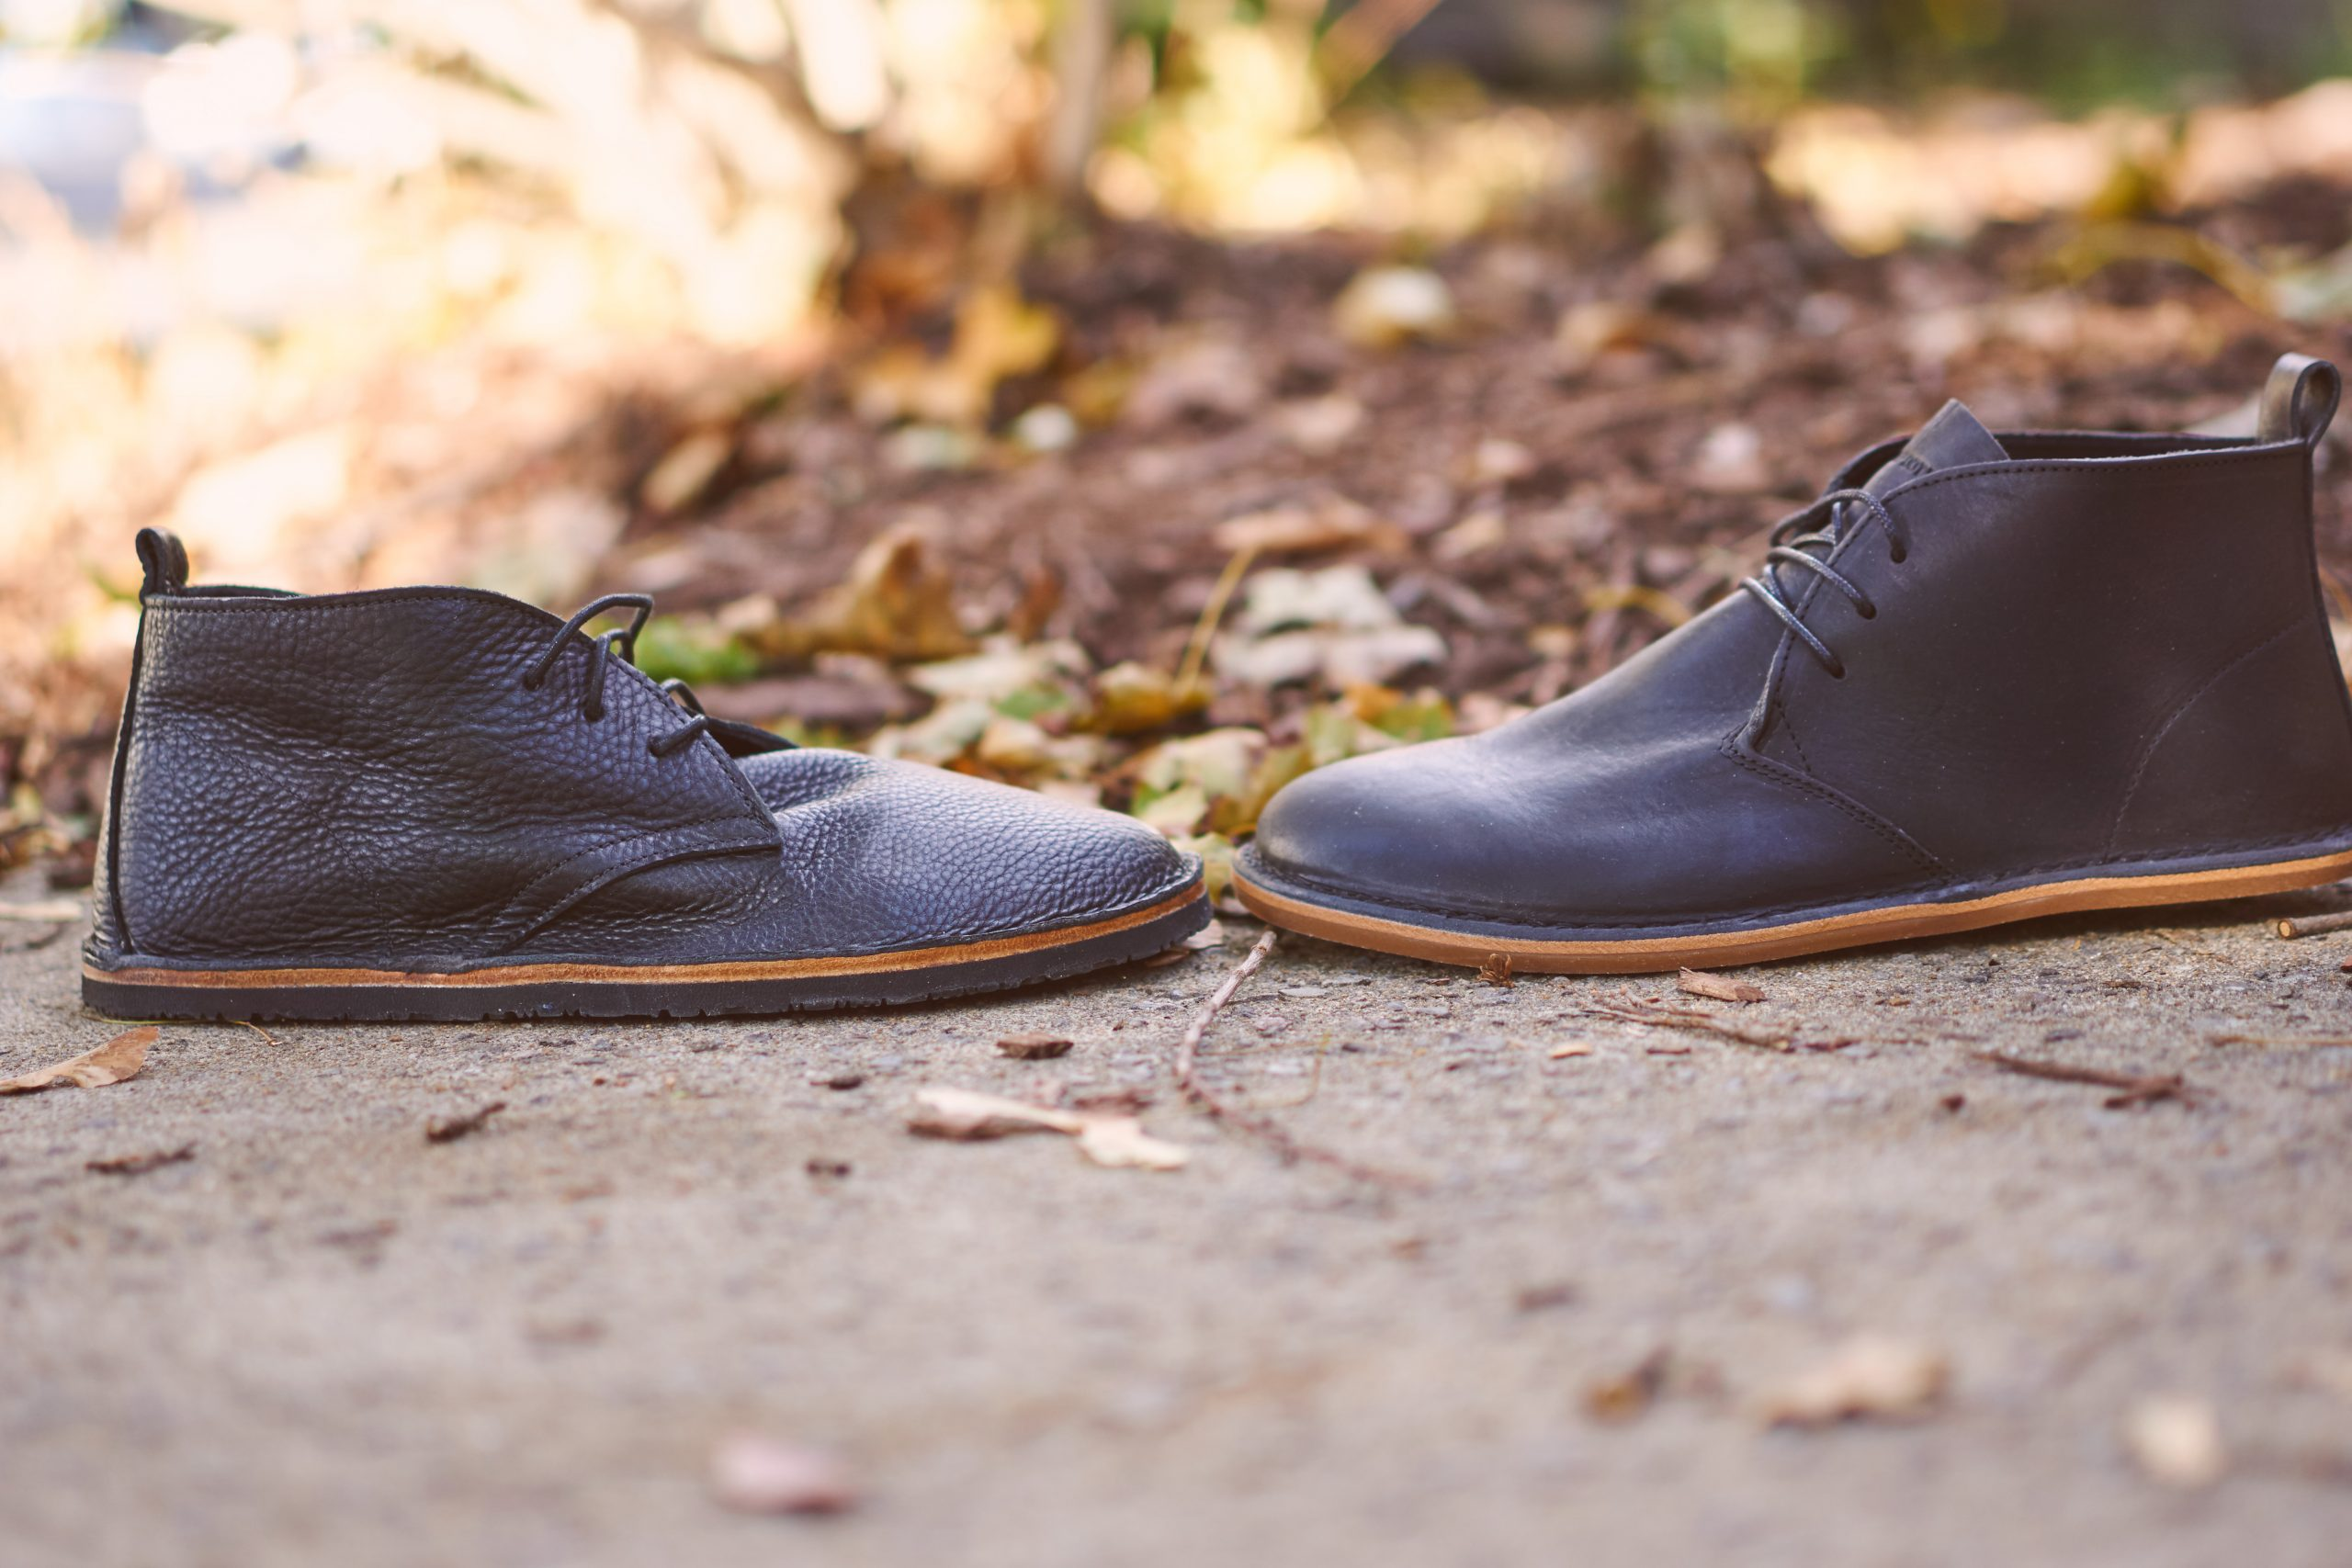 The Hawthorne and its leather midsole/Vibram Geo sole compared to the stiffer Porto sole from Vivobarefoot